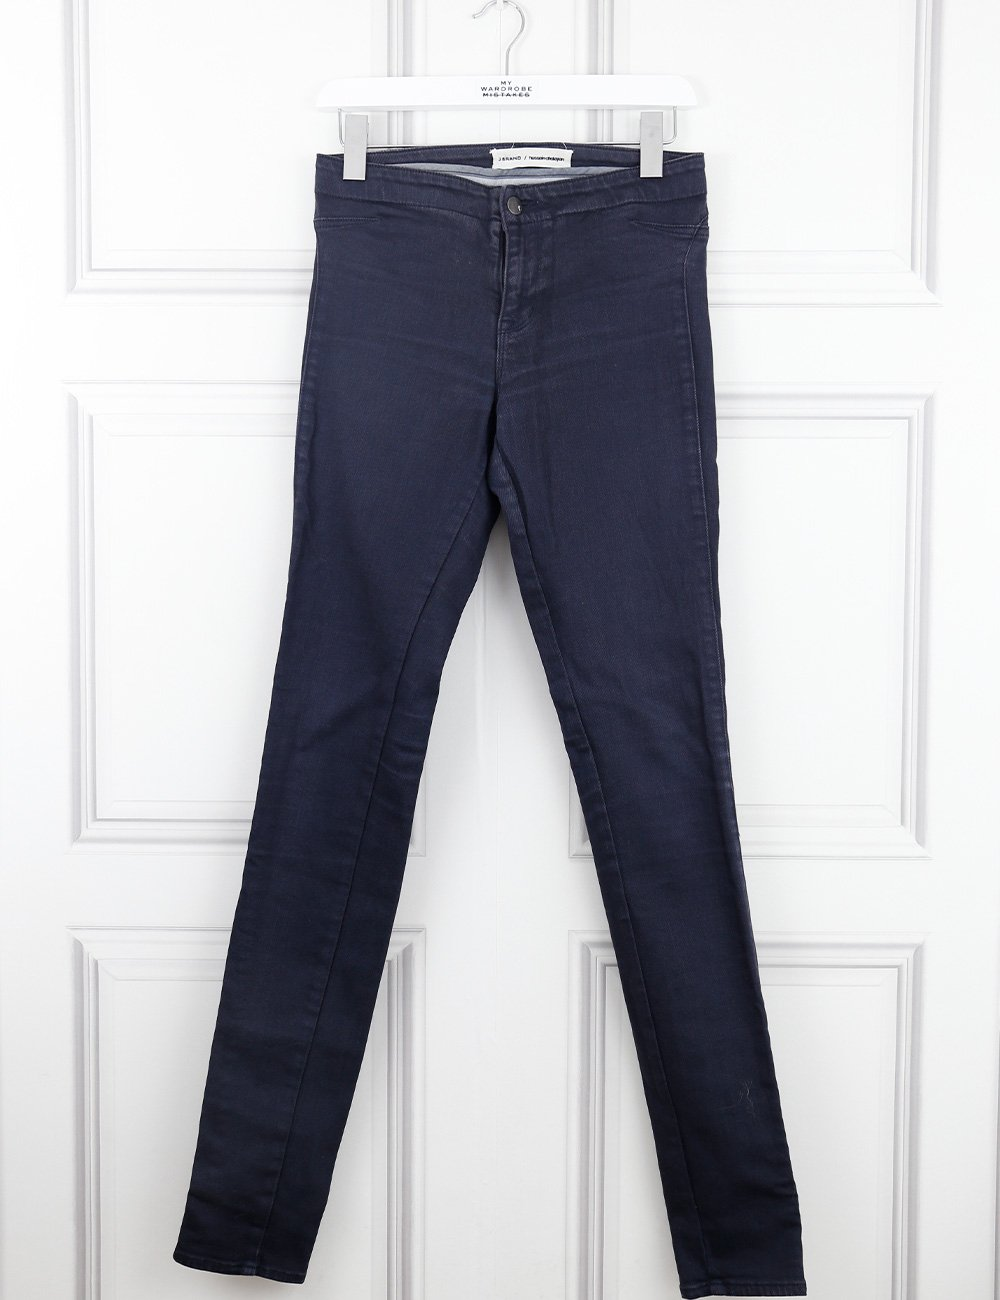 J Brand black Hussein Chalayan jeans 10UK- My Wardrobe Mistakes